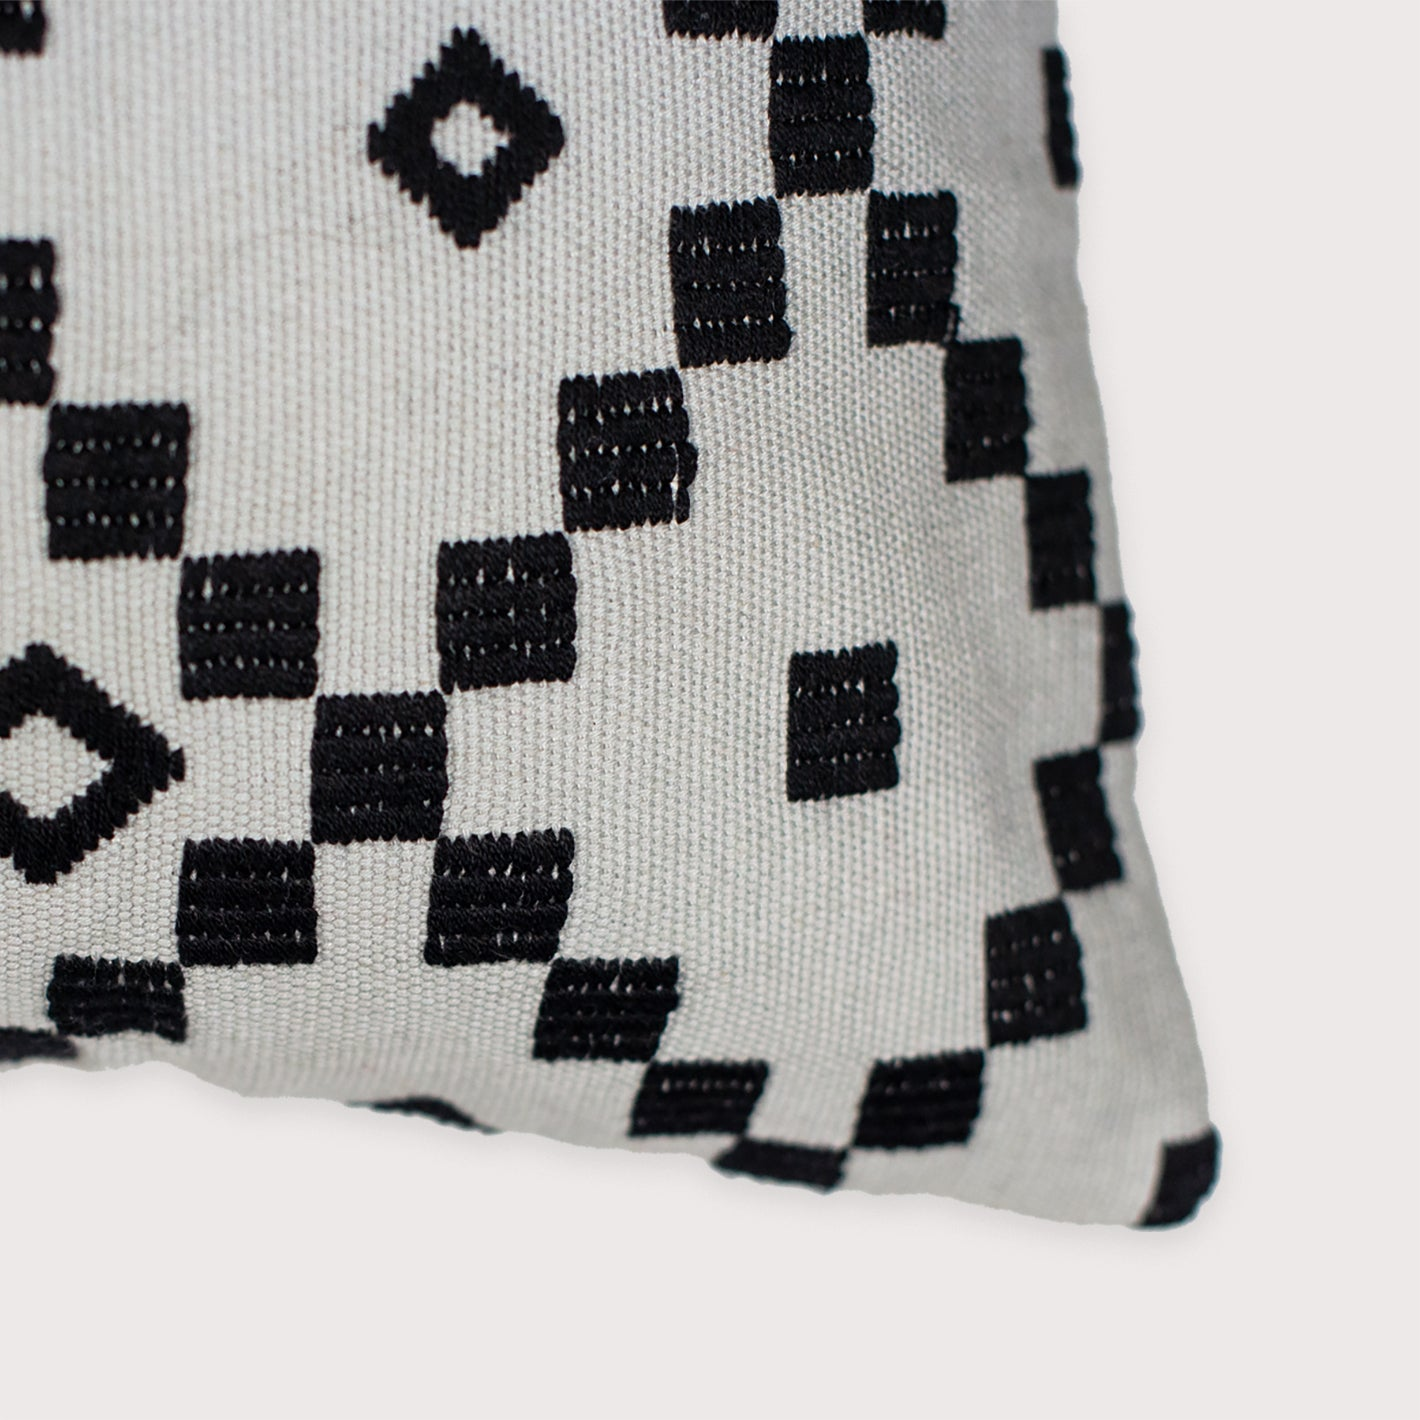 B'atz' - black Pixan Pillow - White Label Project